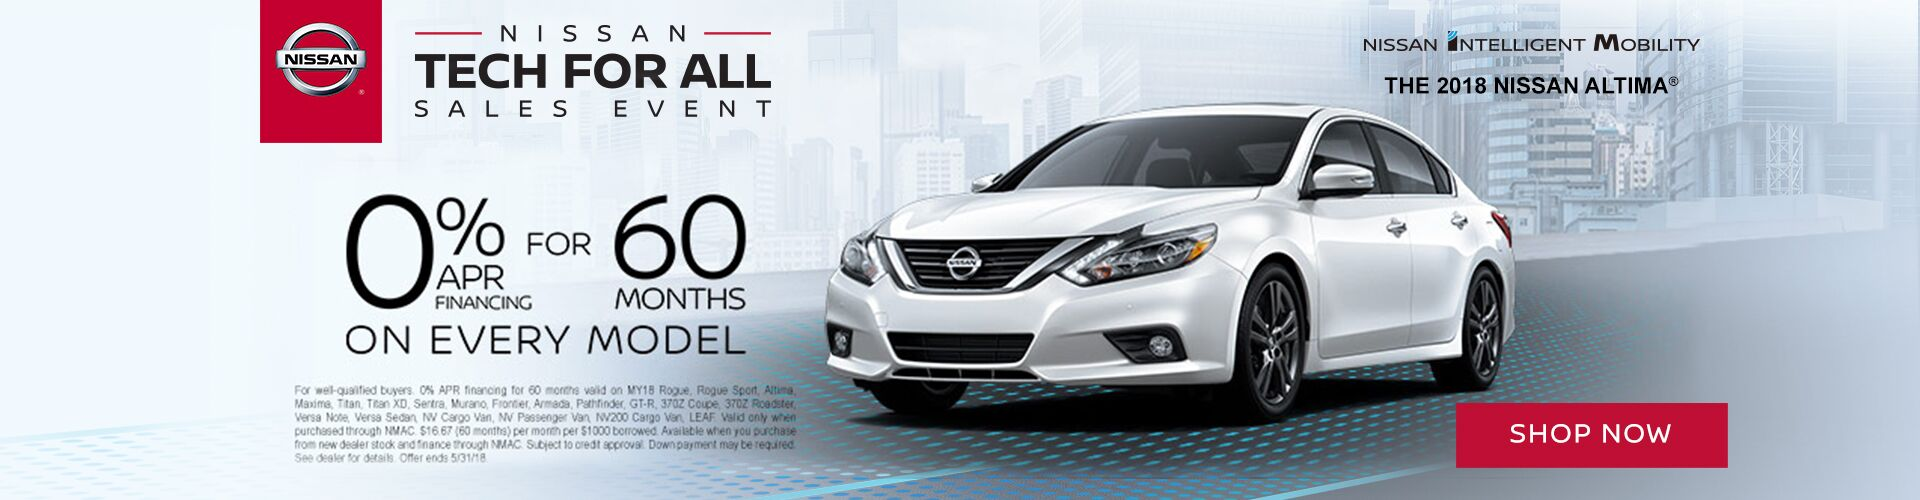 2018 Nissan Altima Tech for All